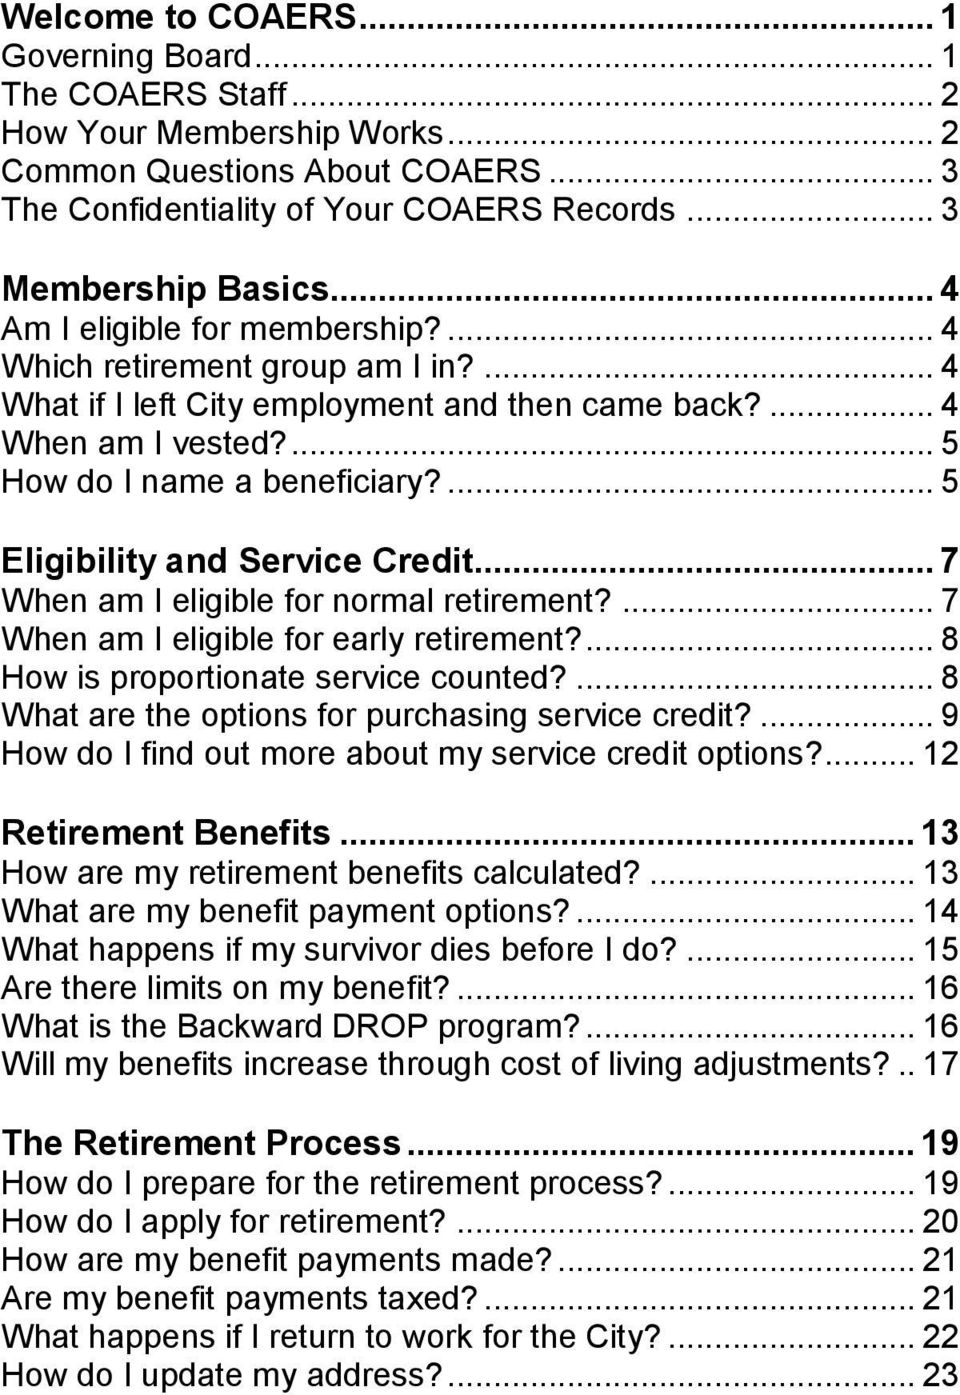 ... 5 Eligibility and Service Credit... 7 When am I eligible for normal retirement?... 7 When am I eligible for early retirement?... 8 How is proportionate service counted?